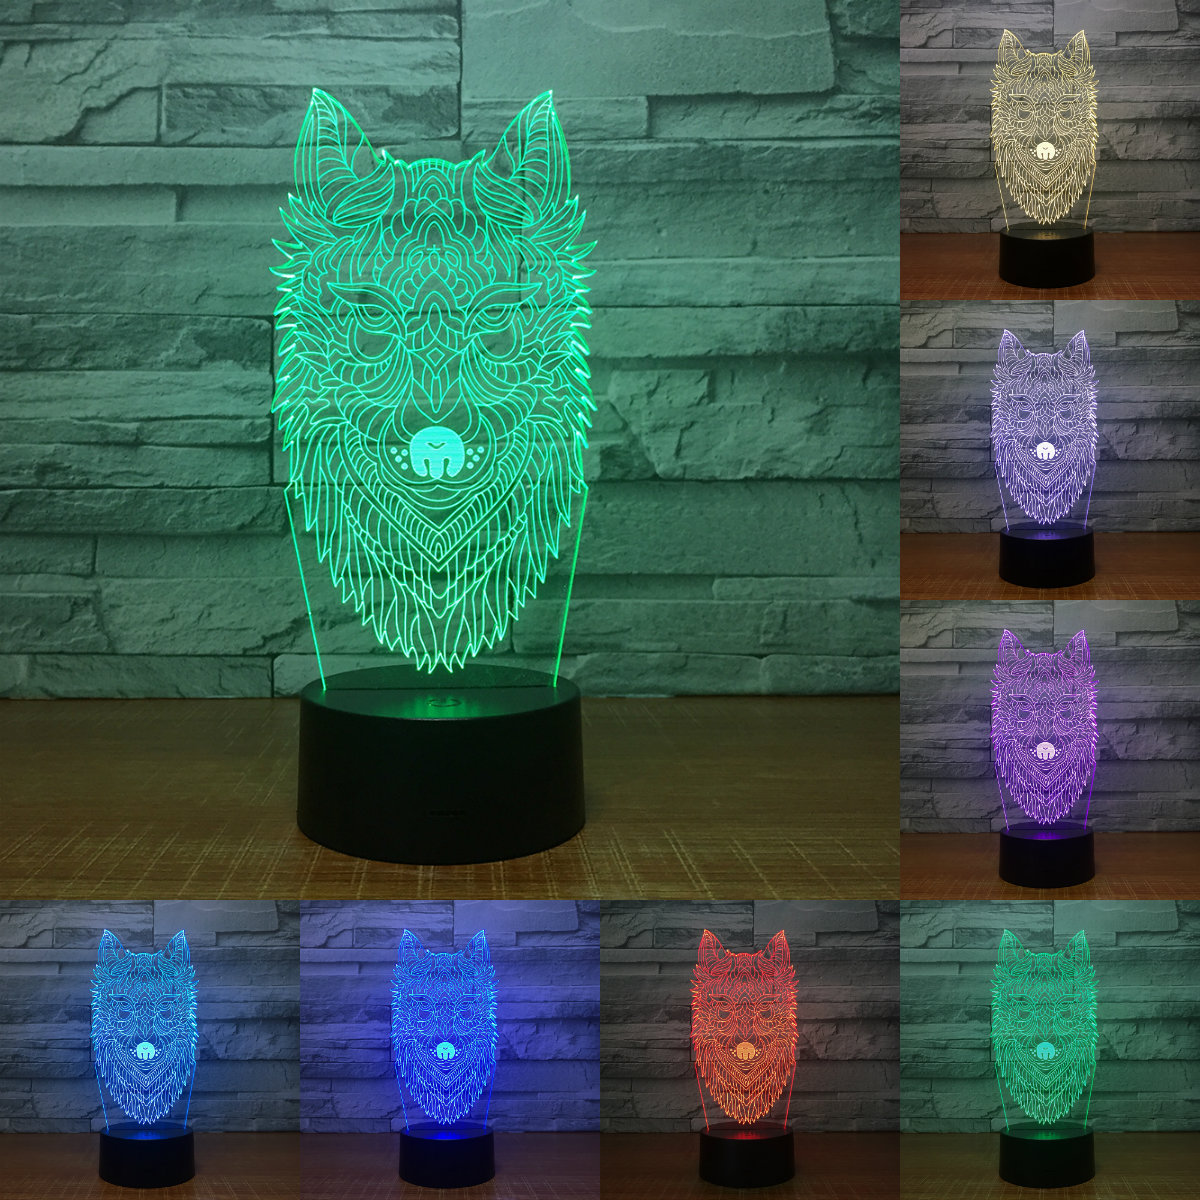 7 Color Wolf head Lamp 3D Visual Led Night Lights for Kids Touch USB Table Lampara Lampe Baby Sleeping Nightlight IY803068